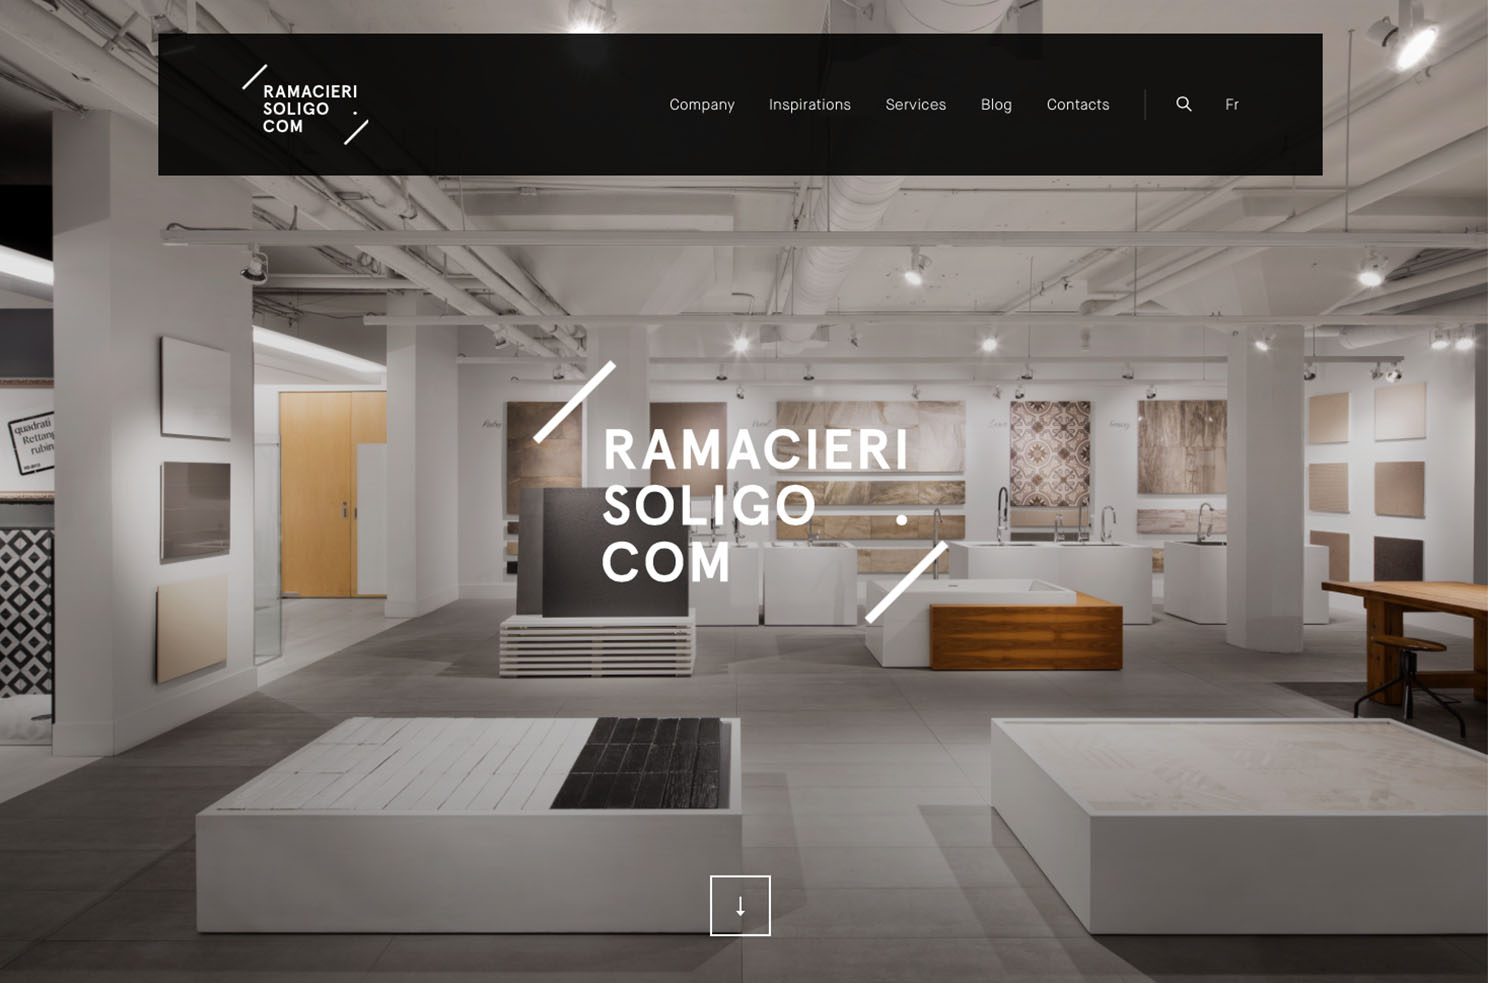 Ramacieri Soligo interior design website Marvellous agency